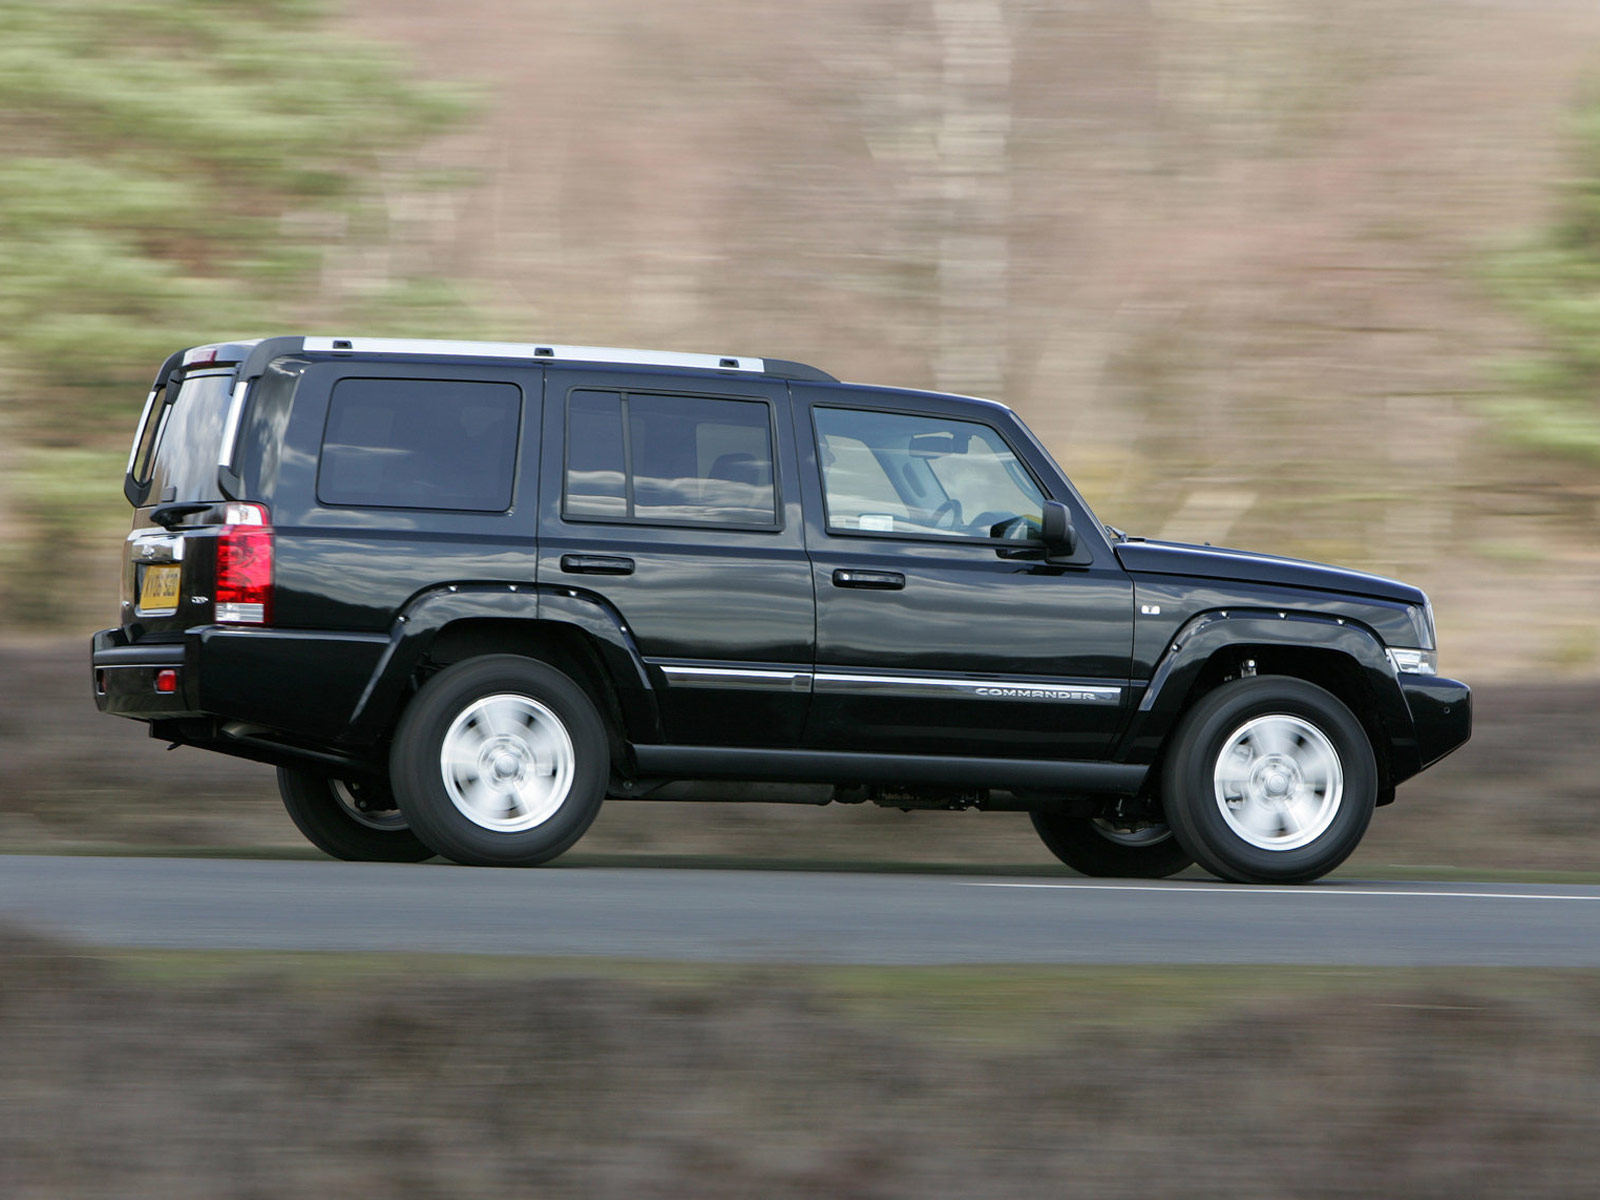 Jeep Commander 2007 photo - 3